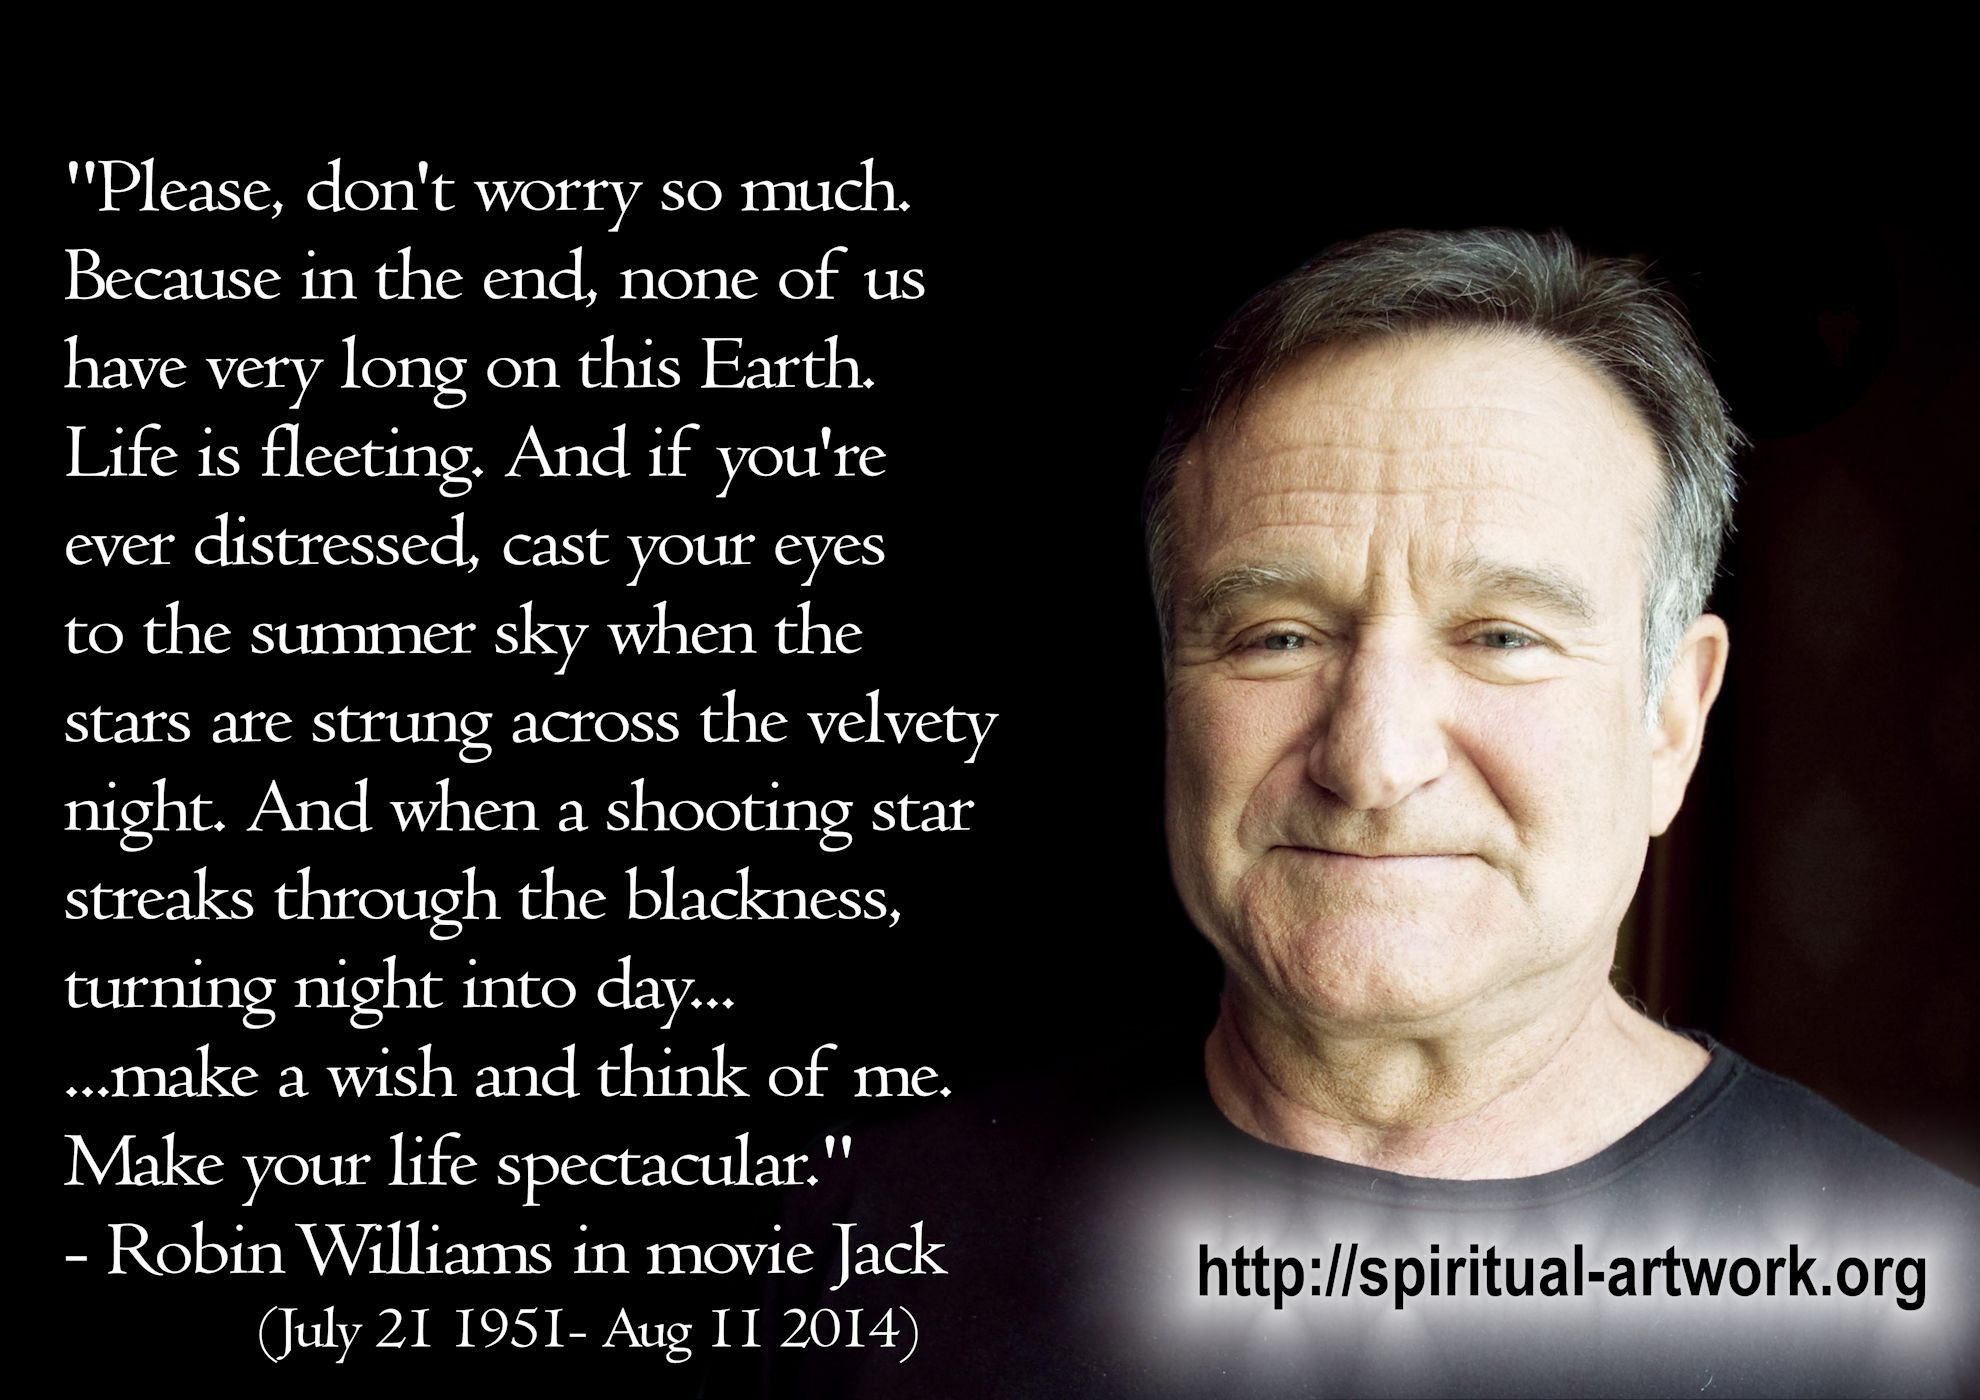 Robin Williams Quotes On Life  e of the Most Touching Yet Devastating Robin Williams